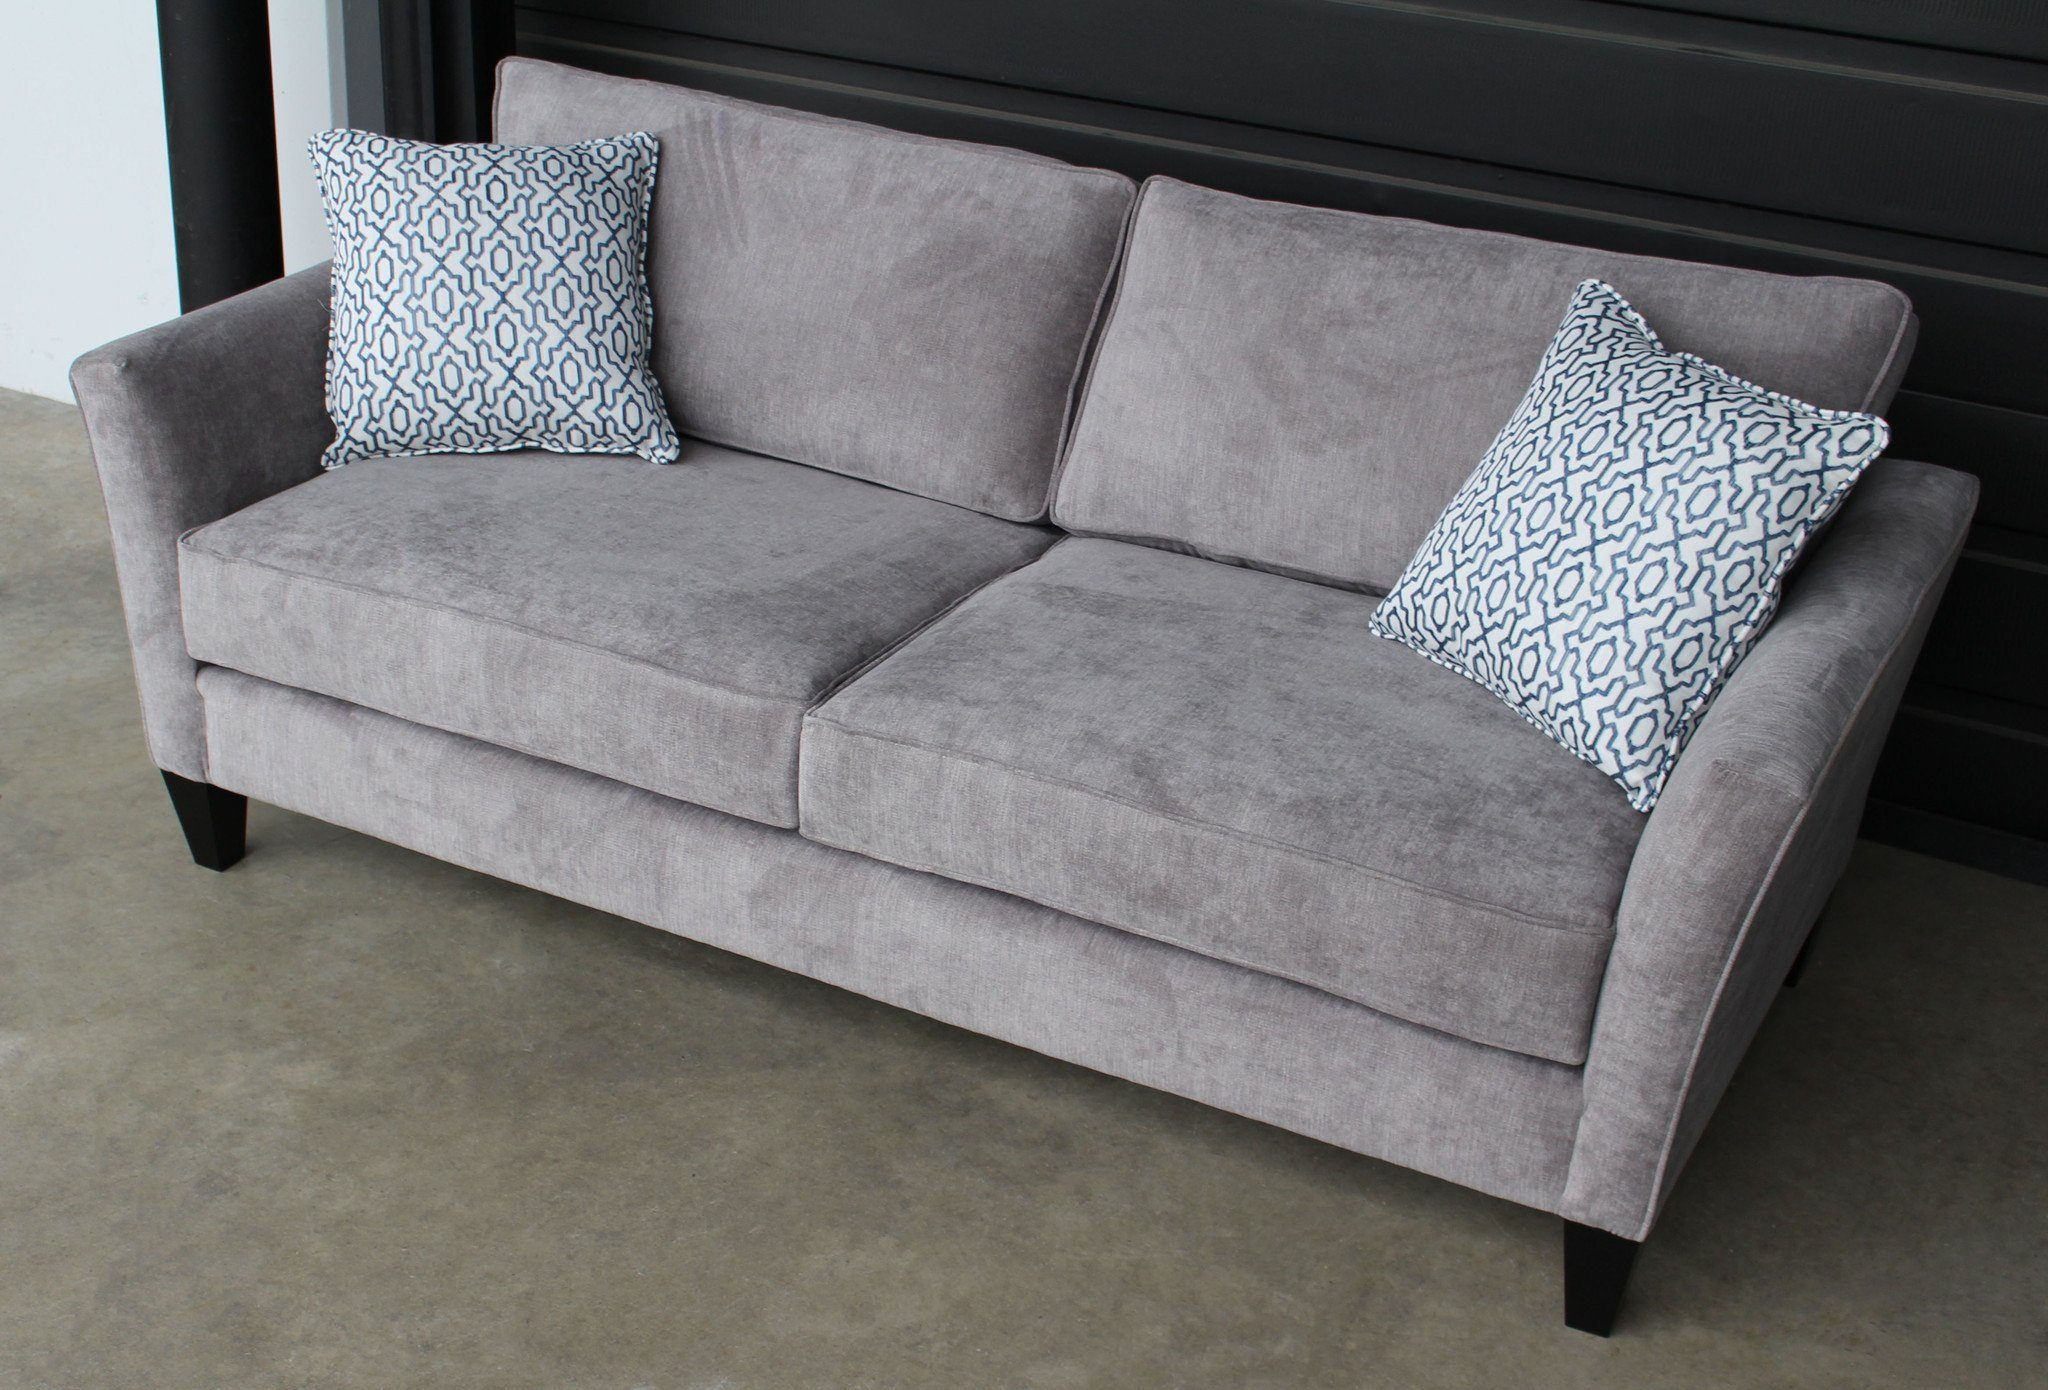 Custom Bruno Sofa - Made in Canada - Showhome Furniture